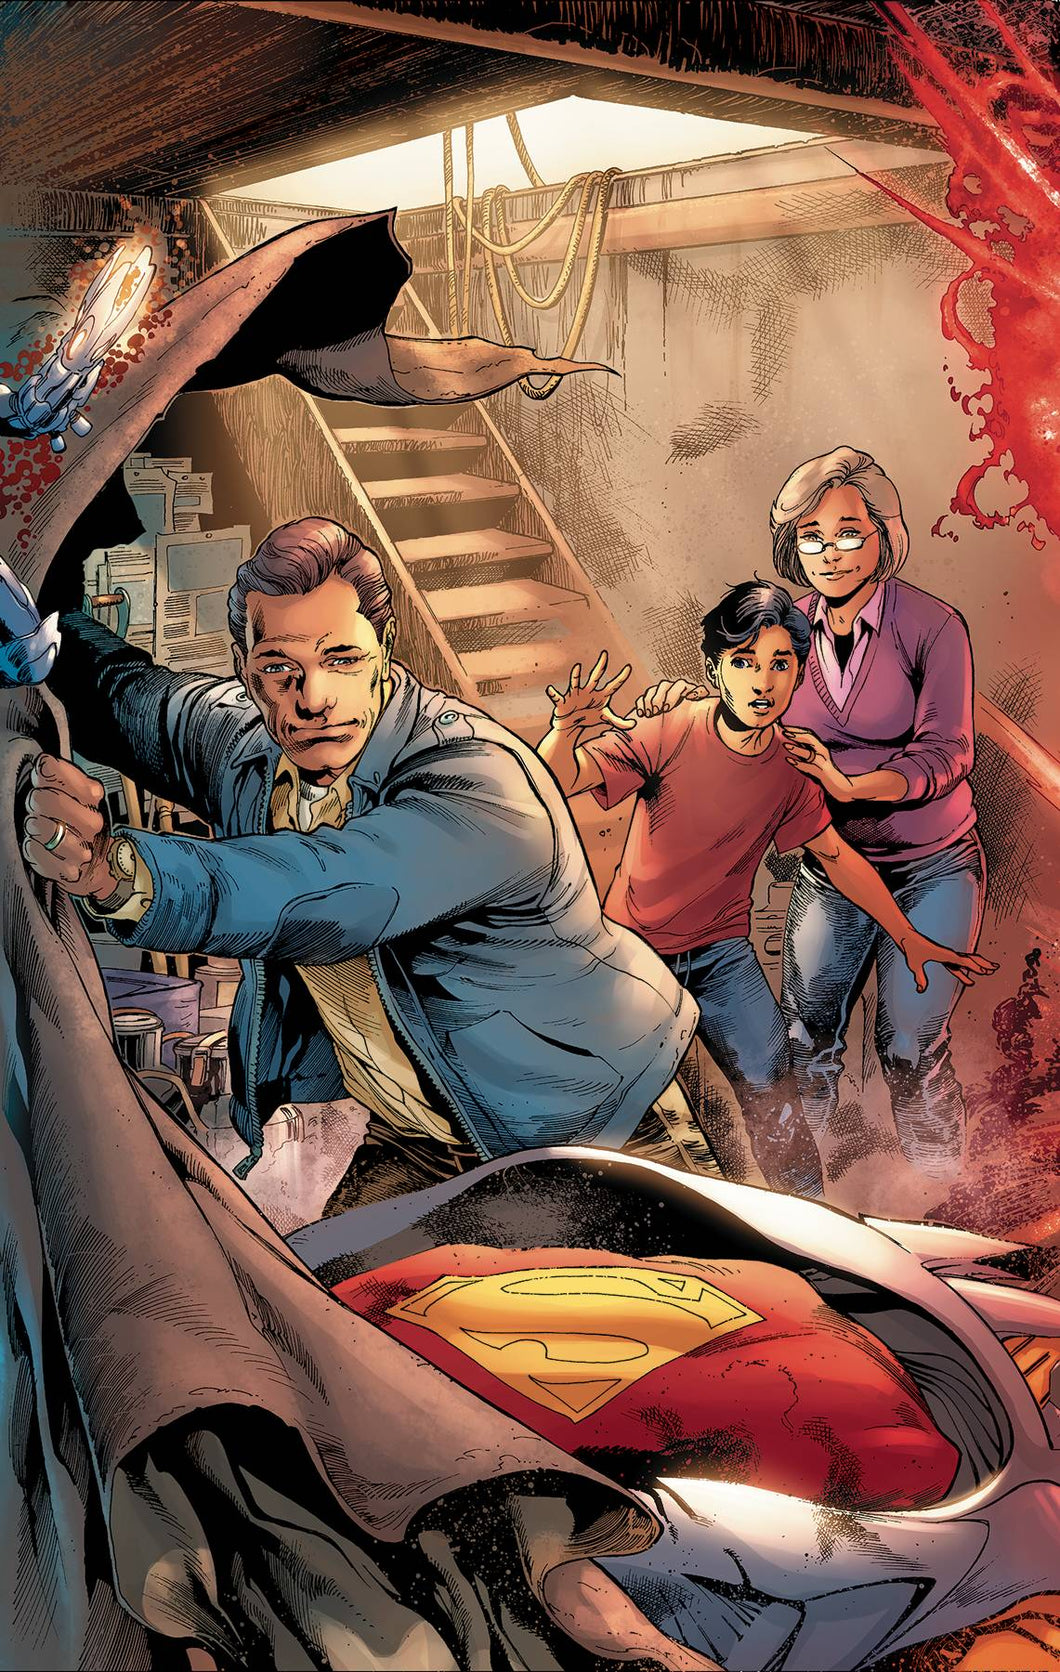 MAN OF STEEL #2 (OF 6) 10% OFF FOC 05/14 (ADVANCE ORDER)